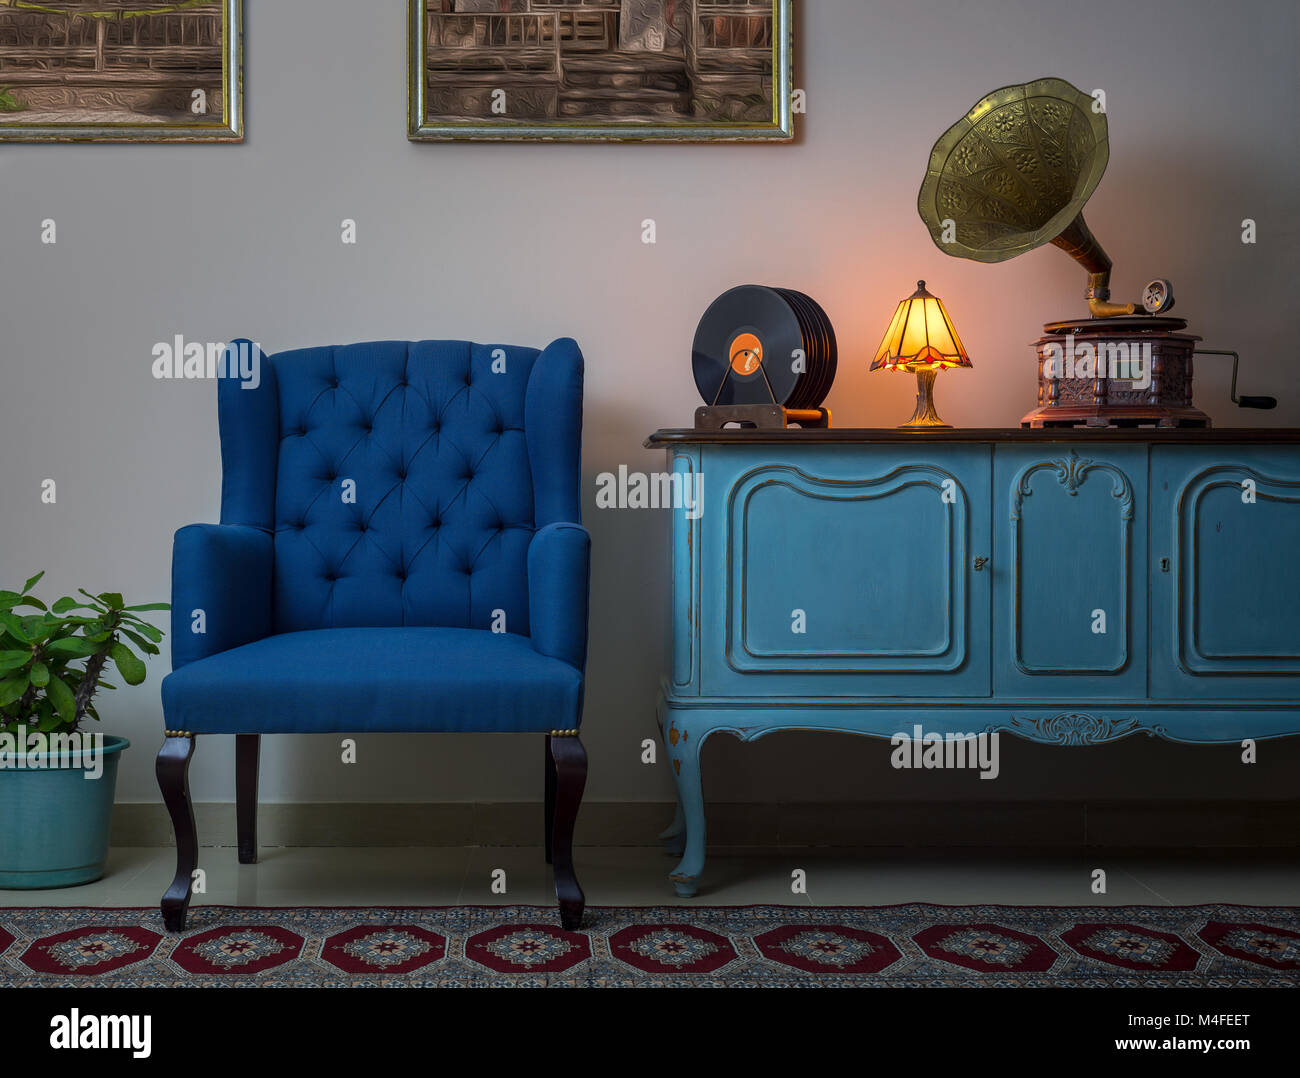 Interior shot of blue armchair, vintage wooden light blue sideboard, lighted antique table lamp, old phonograph - Stock Image